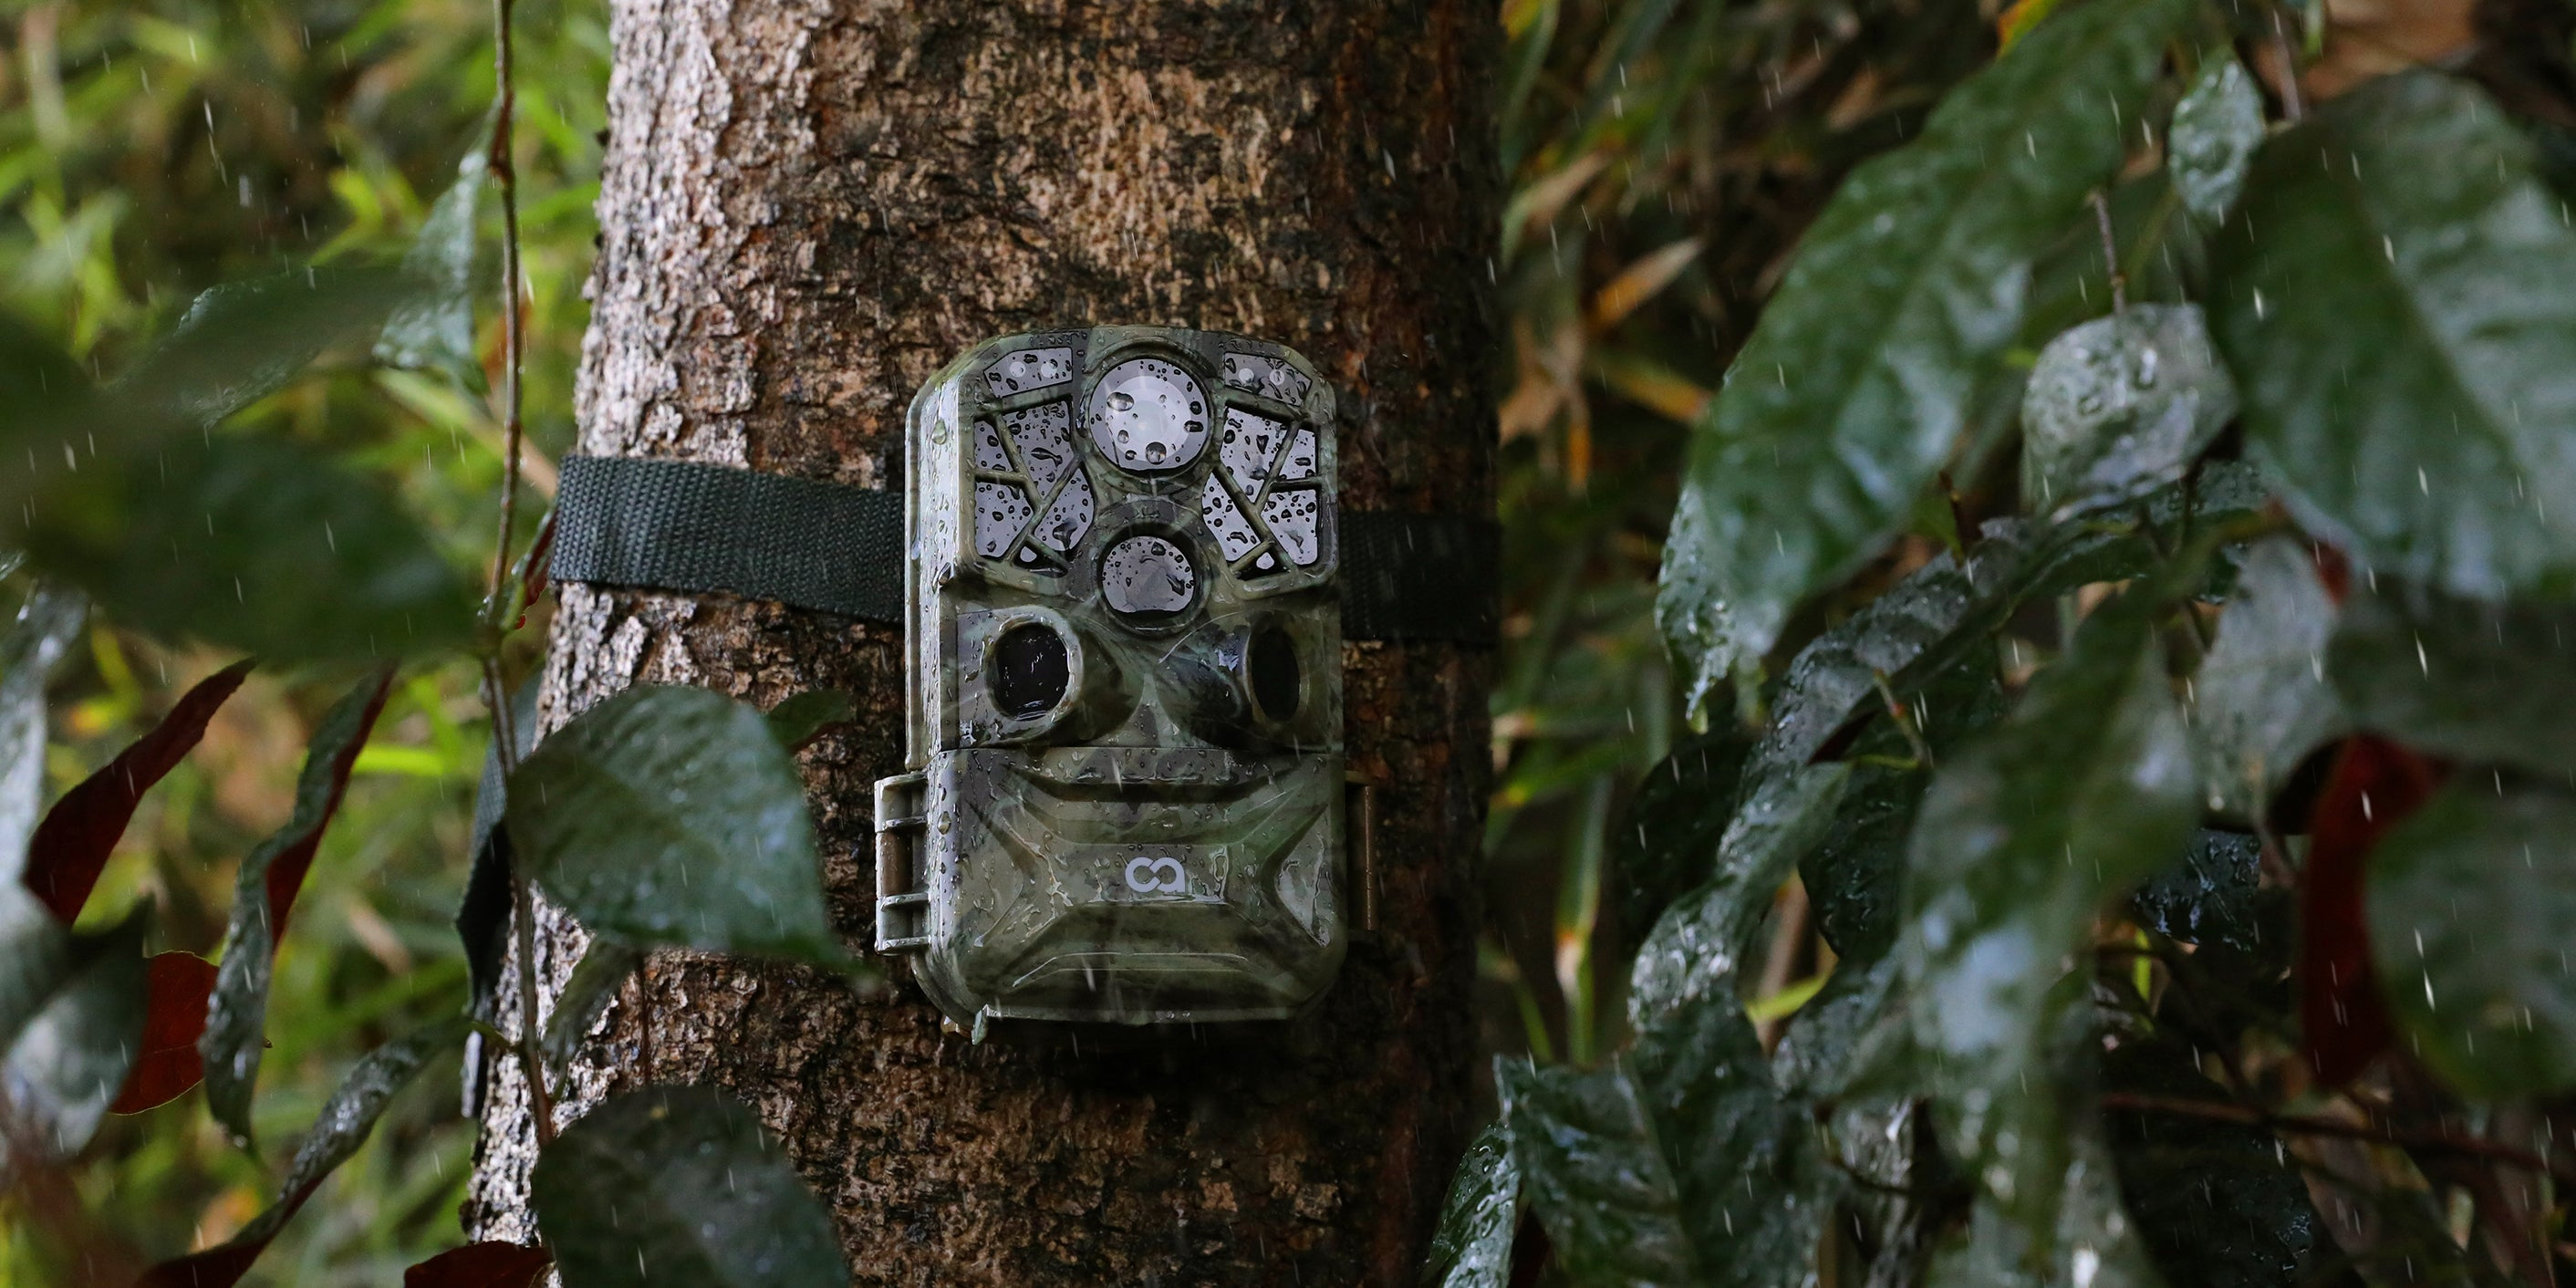 A Cooau trail camera fixed in a tree of the wilds is resisting the rain.